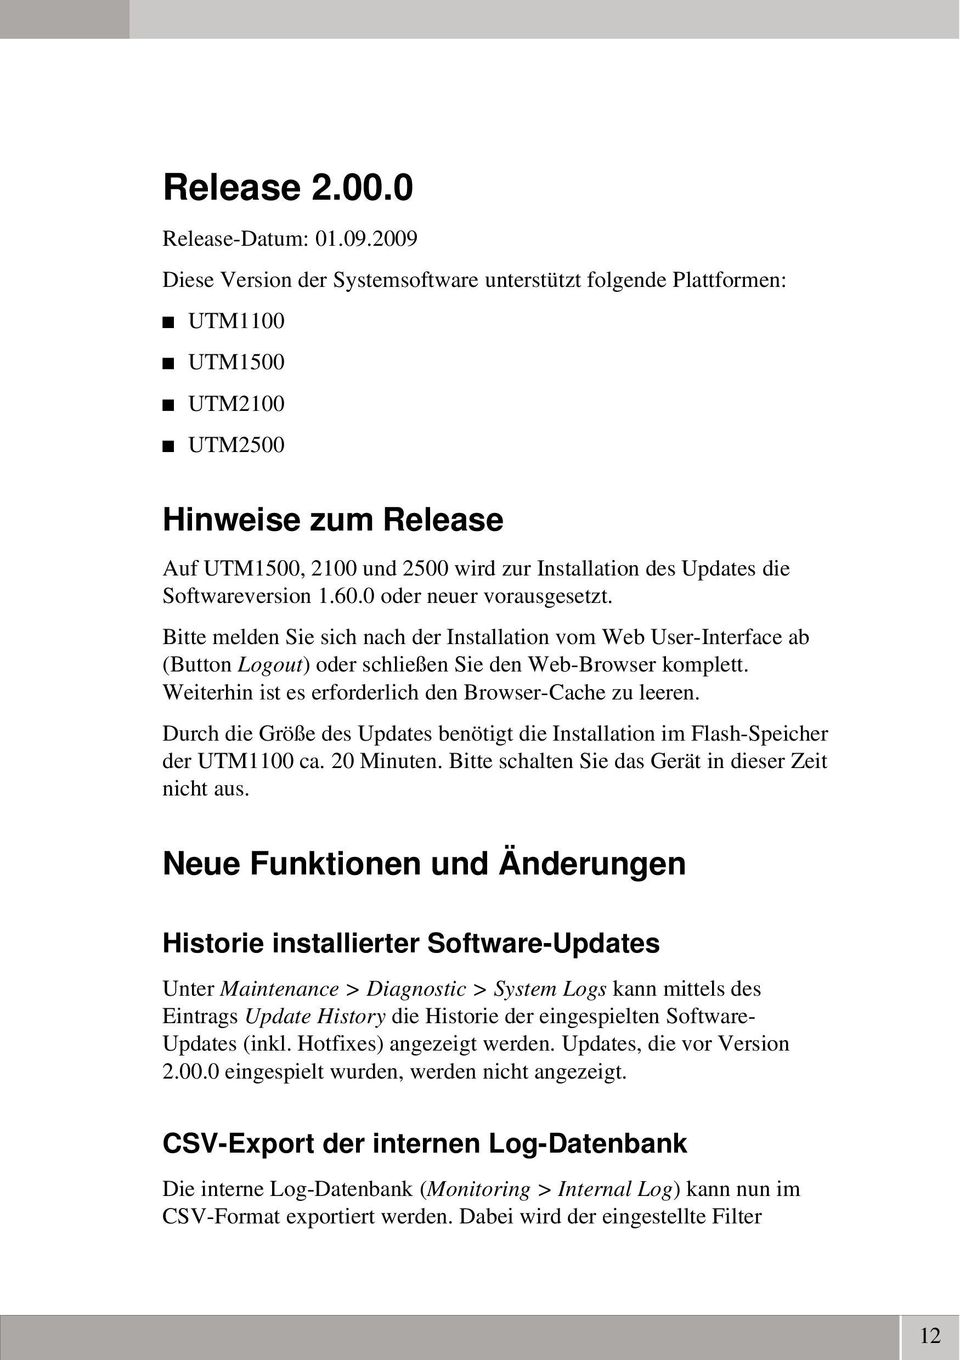 Softwareversion 1.60.0 oder neuer vorausgesetzt. Bitte melden Sie sich nach der Installation vom Web User Interface ab (Button Logout) oder schließen Sie den Web Browser komplett.